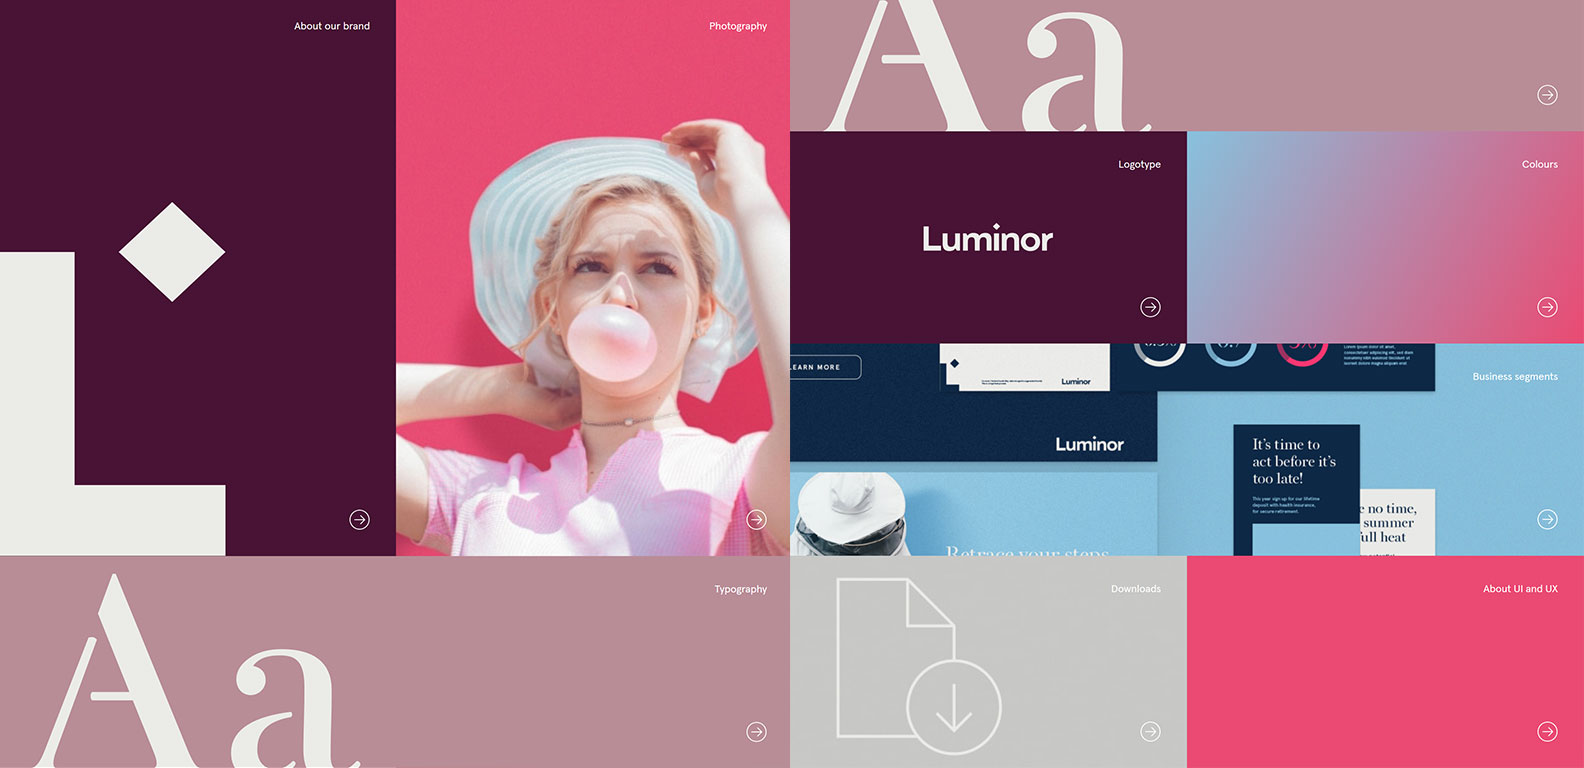 Luminor - digital stylebook